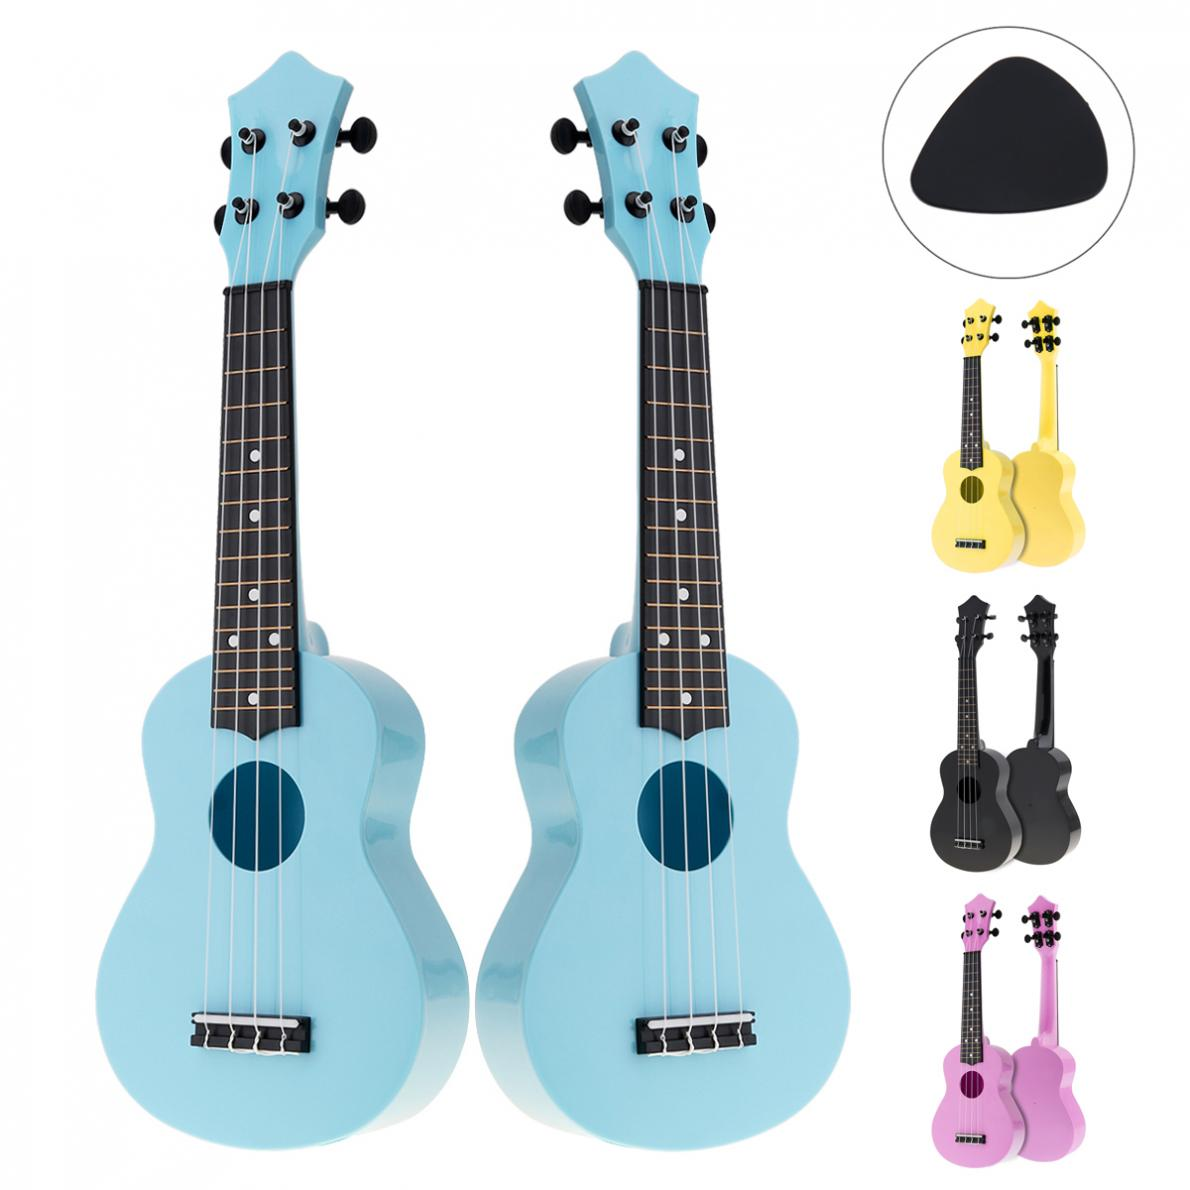 21 Inch Soprano Acoustic Ukulele Colorful   ABS Plastic  4 Strings  Hawaii Guitar Musica Instrument for Kids and Music Beginner enlarge